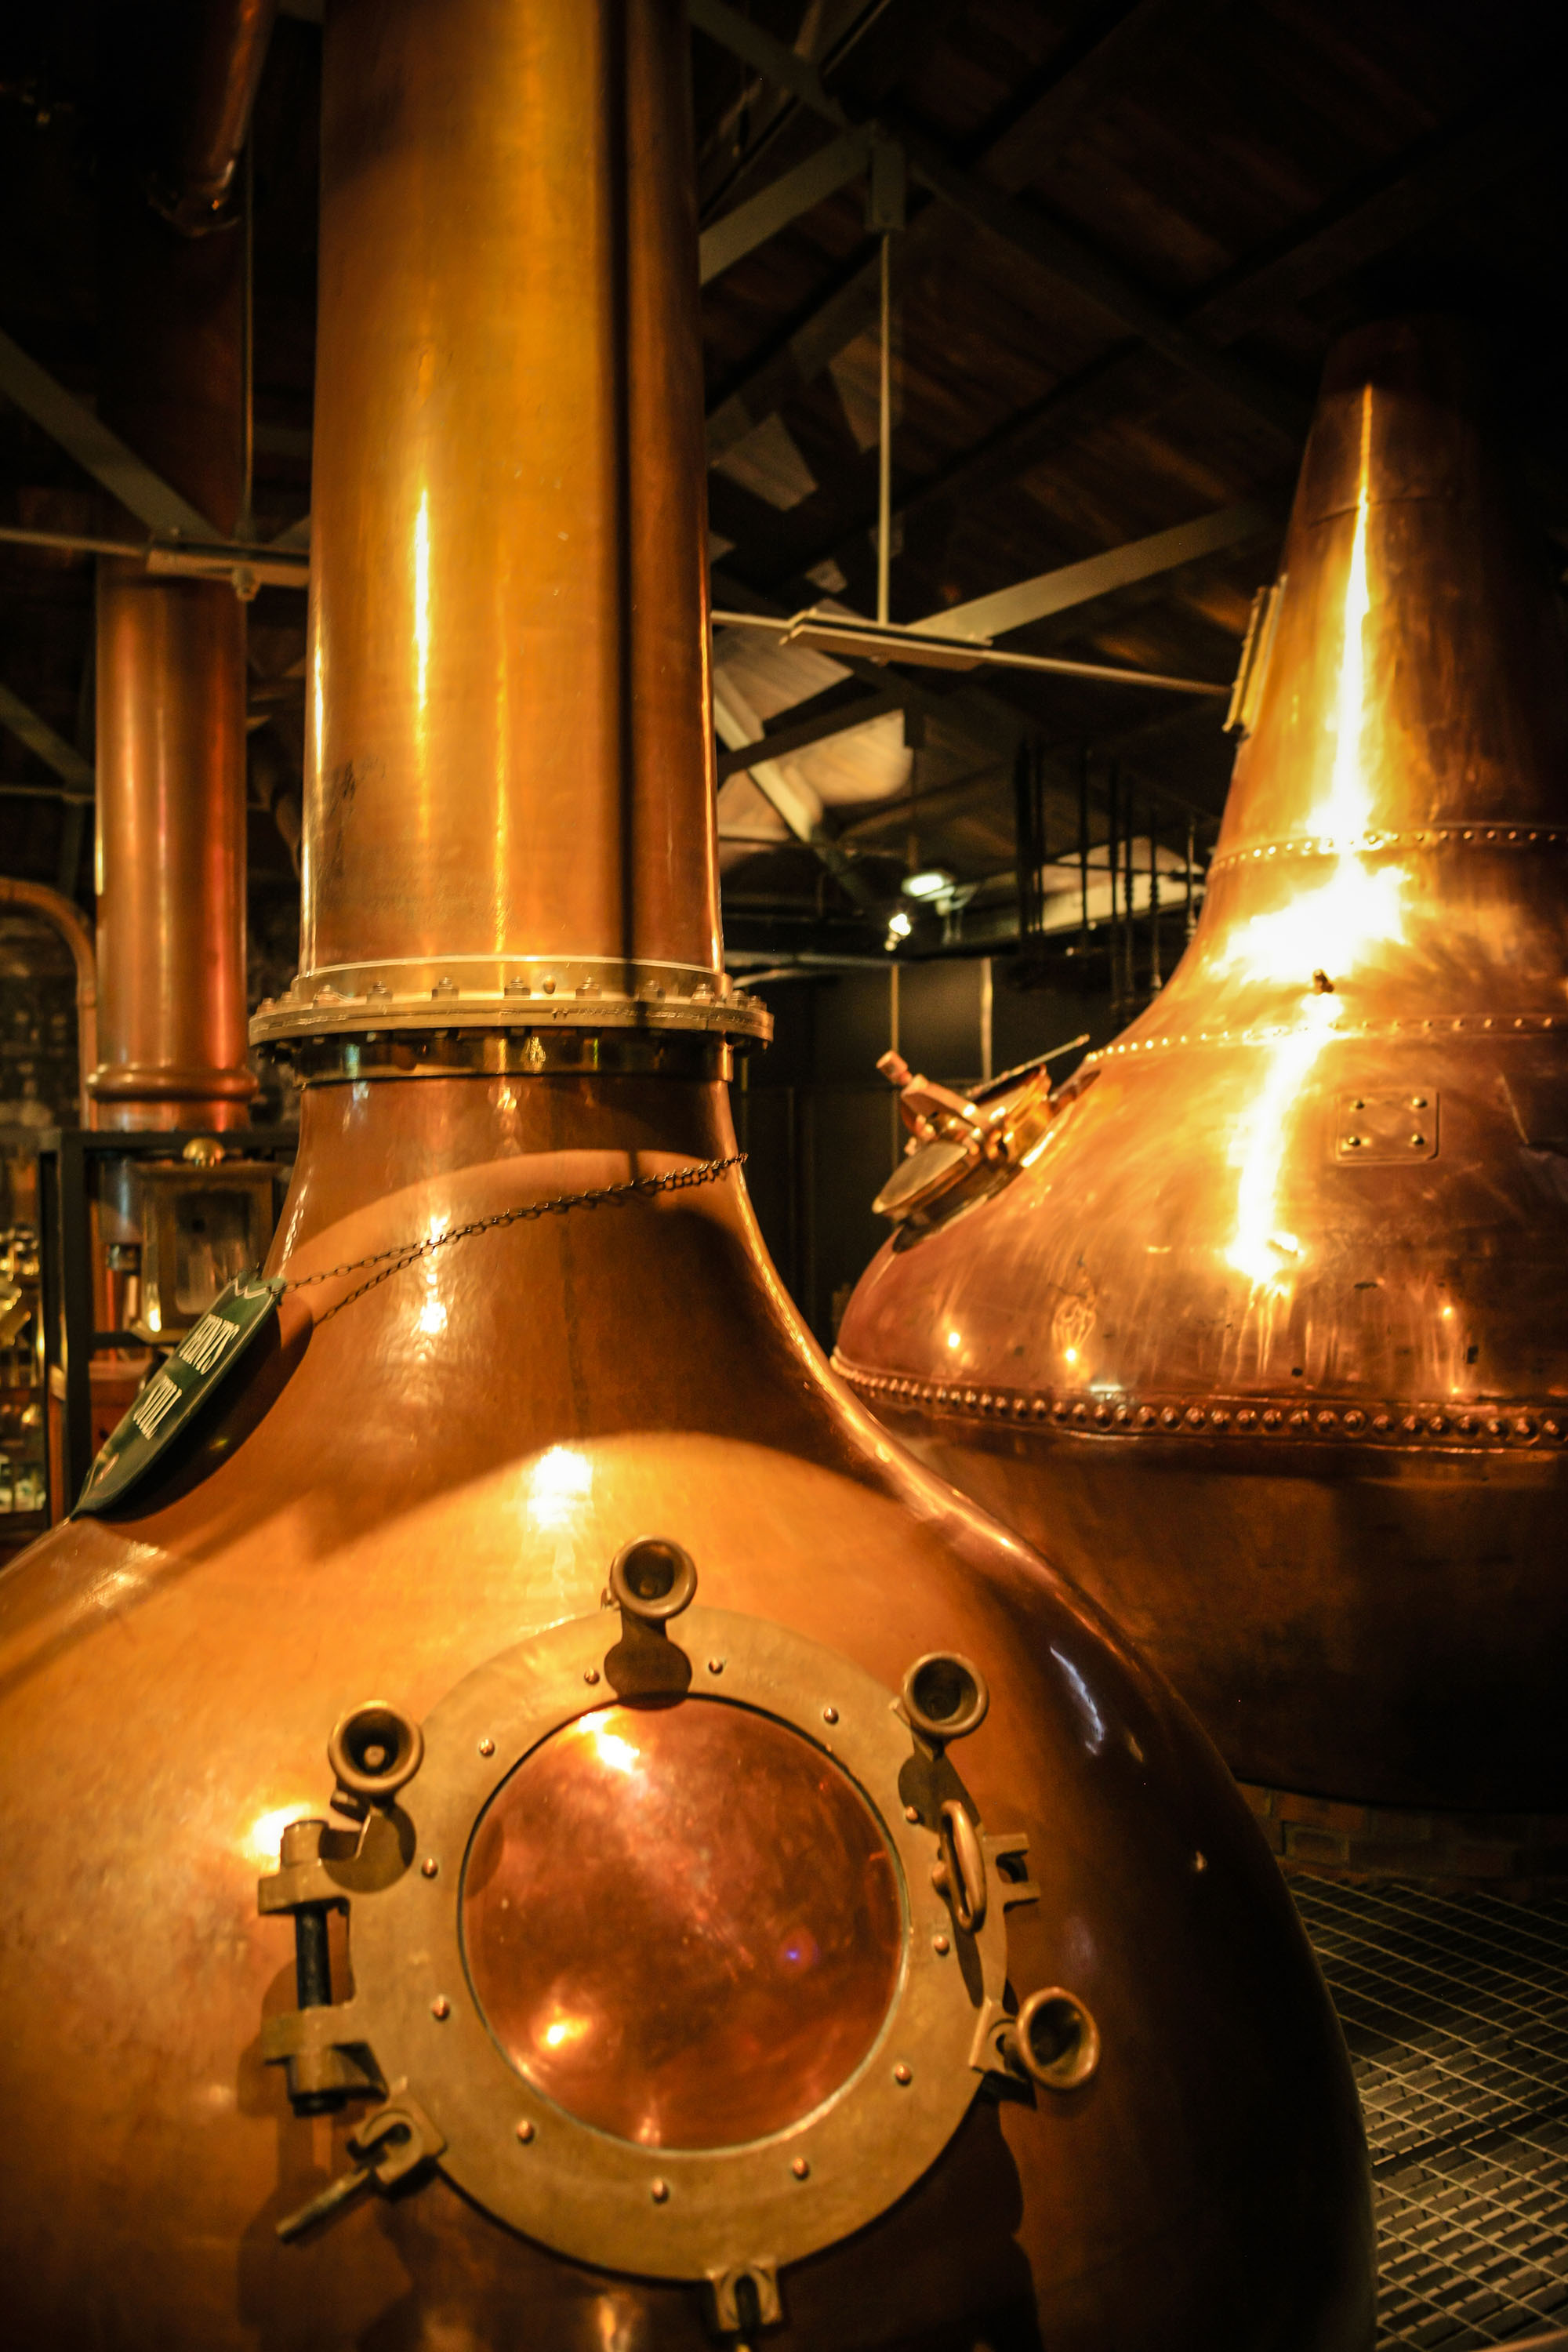 Copper fermentation vats at an Scottish Whiskey distillery